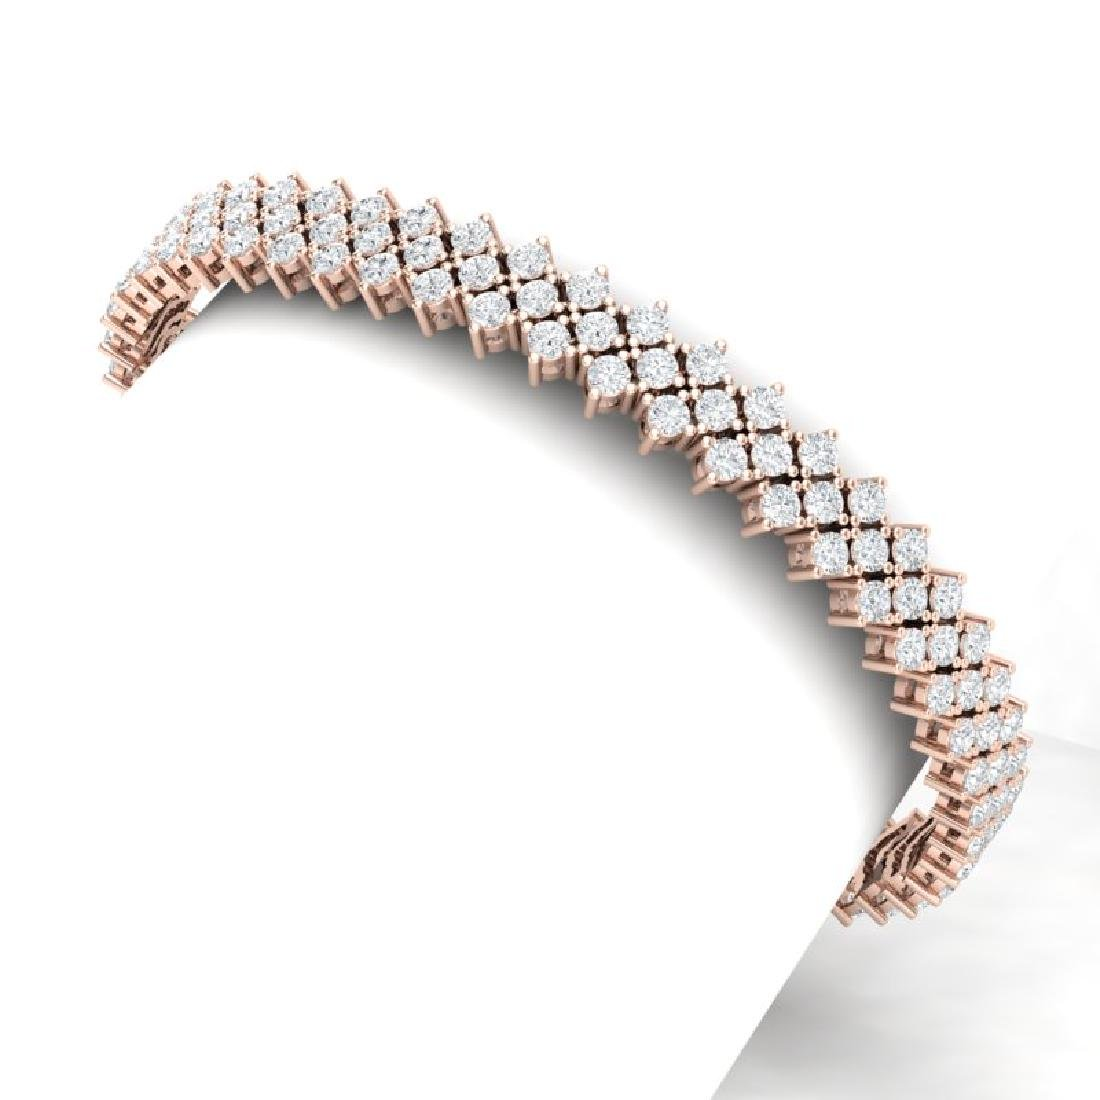 10 CTW Certified SI/I Diamond Bracelet 18K Rose Gold